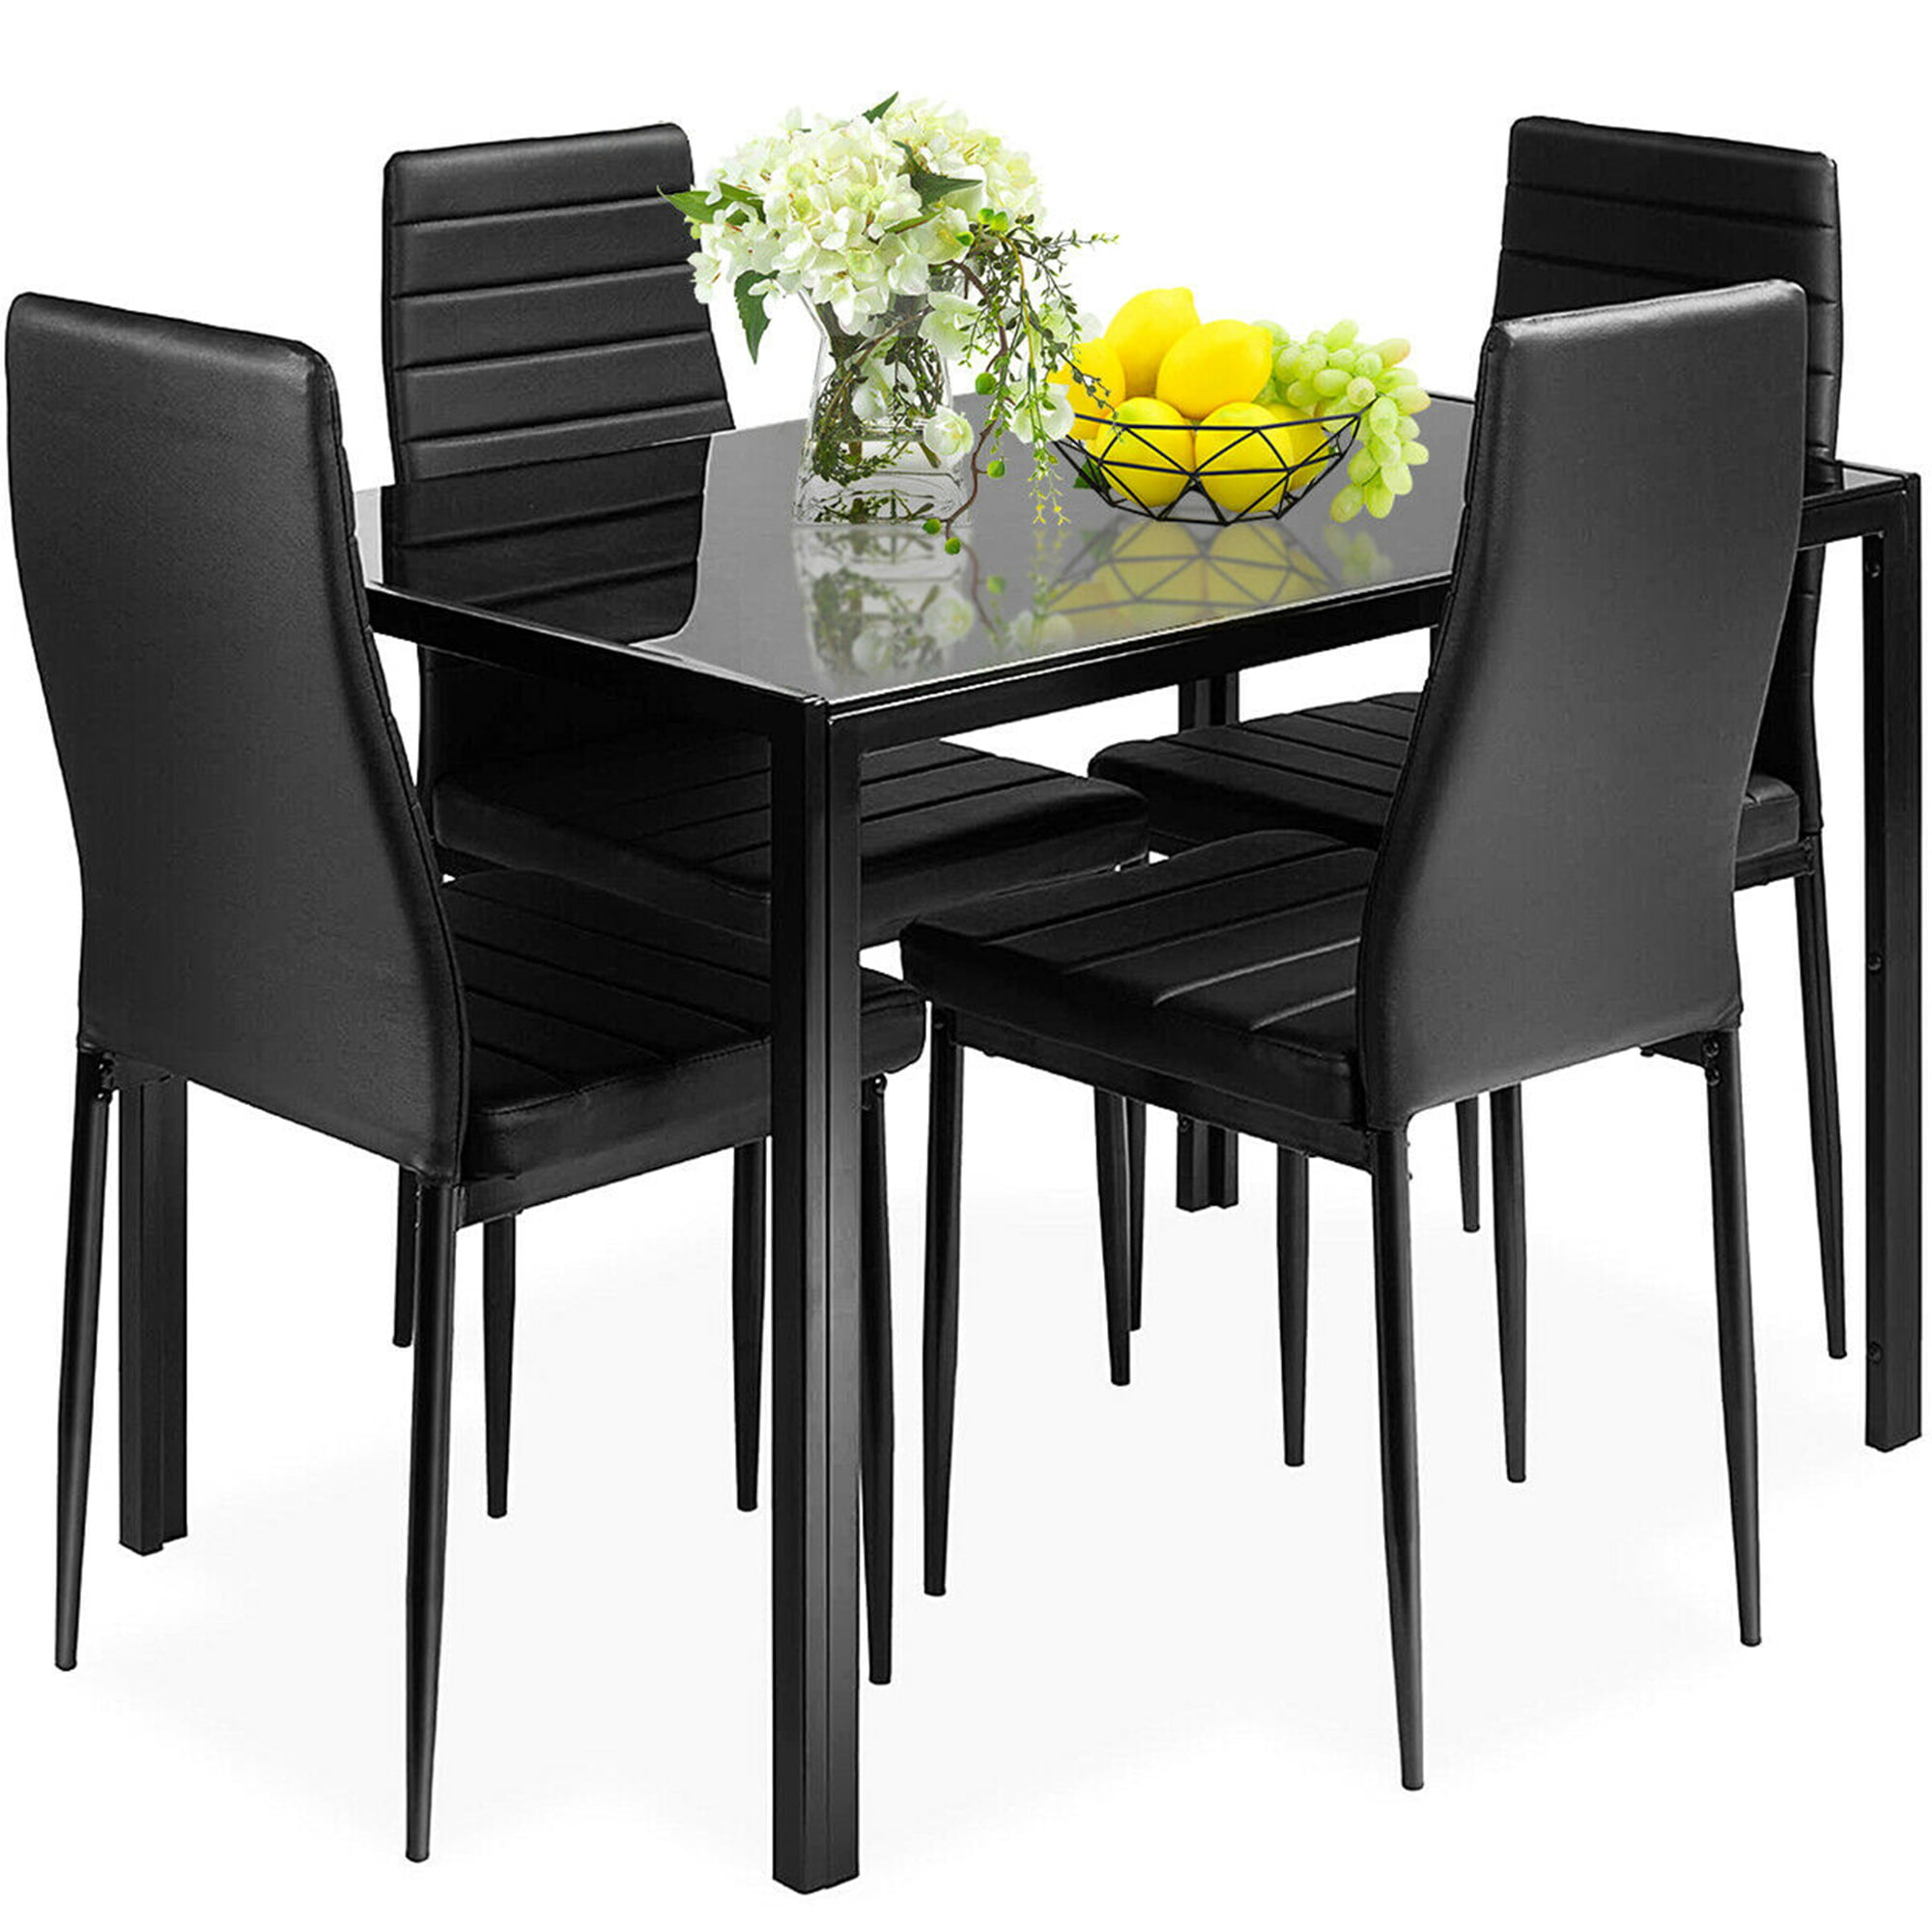 Gymax 5 Pieces Table Chair Kitchen, High Quality Dining Room Sets